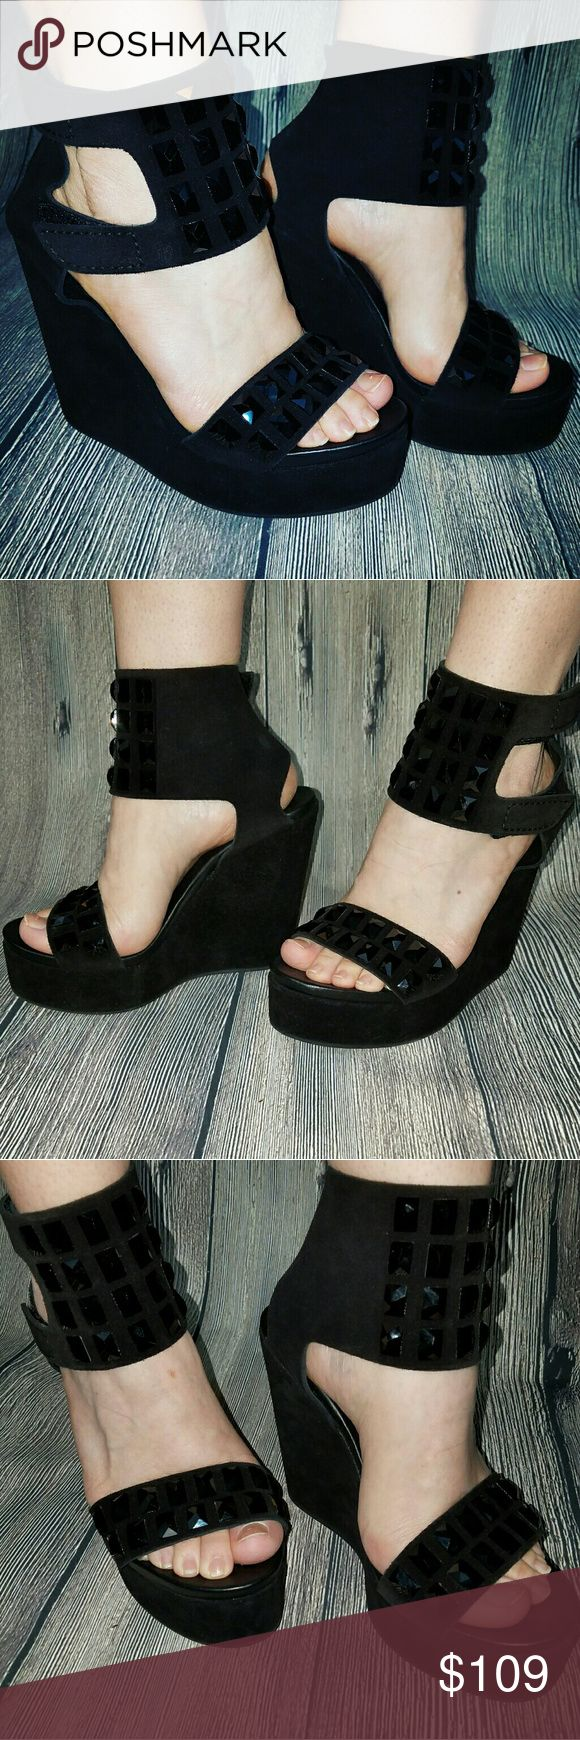 """Pedro Garcia TALISA Wedges Black Suede Leather Sexy Pedro Garcia """"Talisa"""" embellished high heel wedges in black suede leather. Made in Spain. Minor scuffs from wear. Product Code: W5262399 Size: 38 1/2 Pedro Garcia Shoes Wedges"""